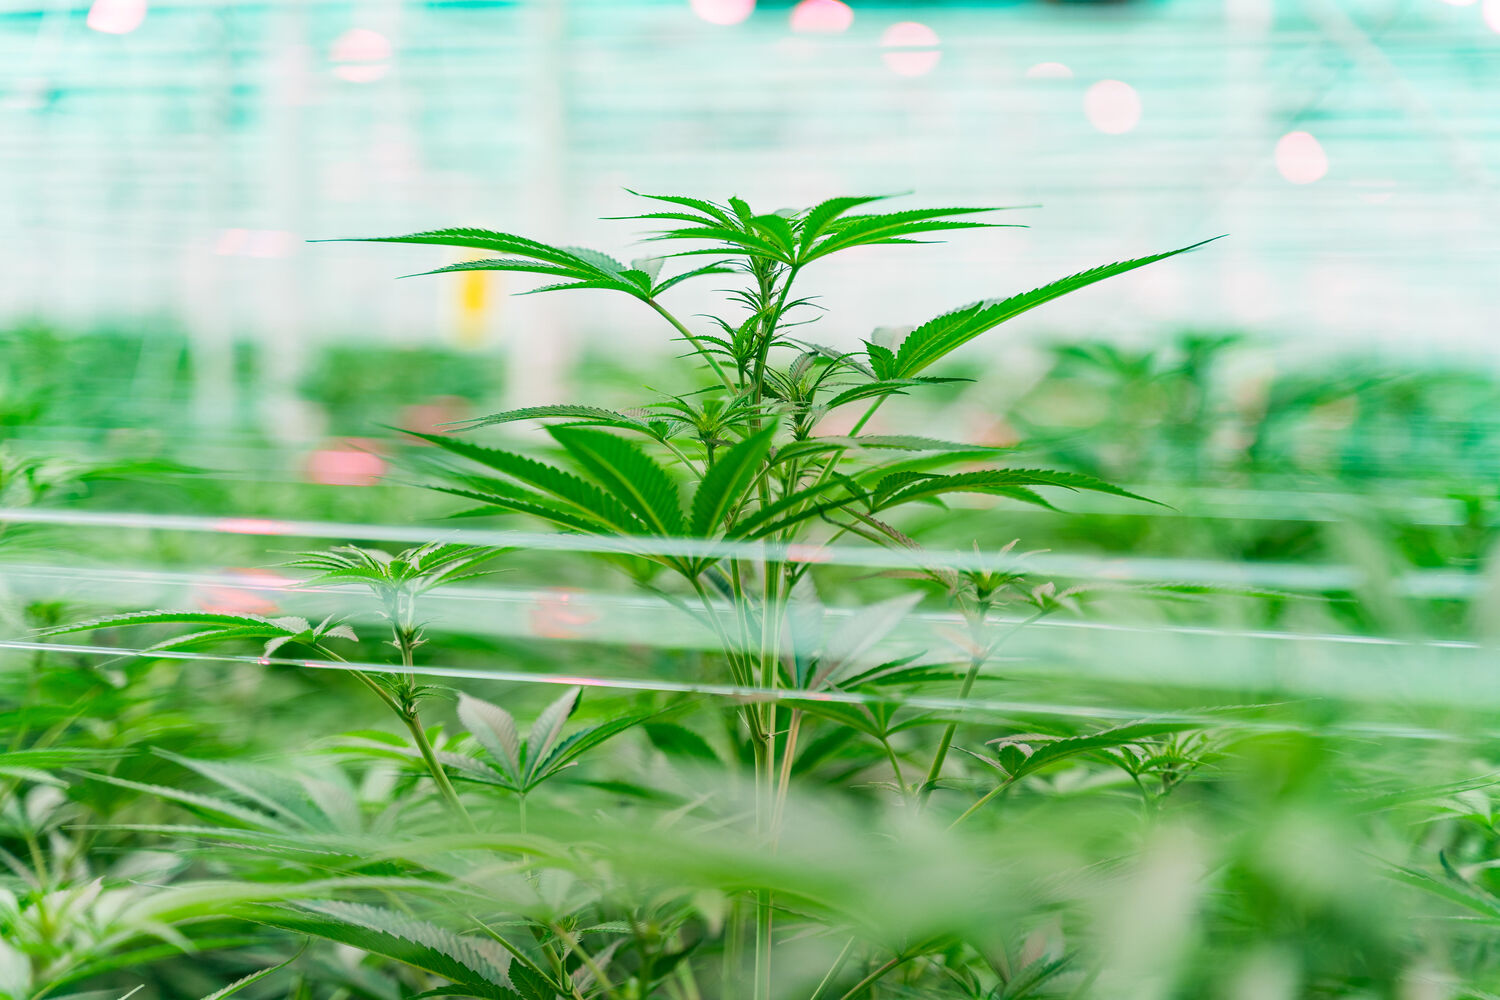 PRESS RELEASE: Horticultural companies and scientific partners share cannabis knowledge in Legal Cannabis Coalition